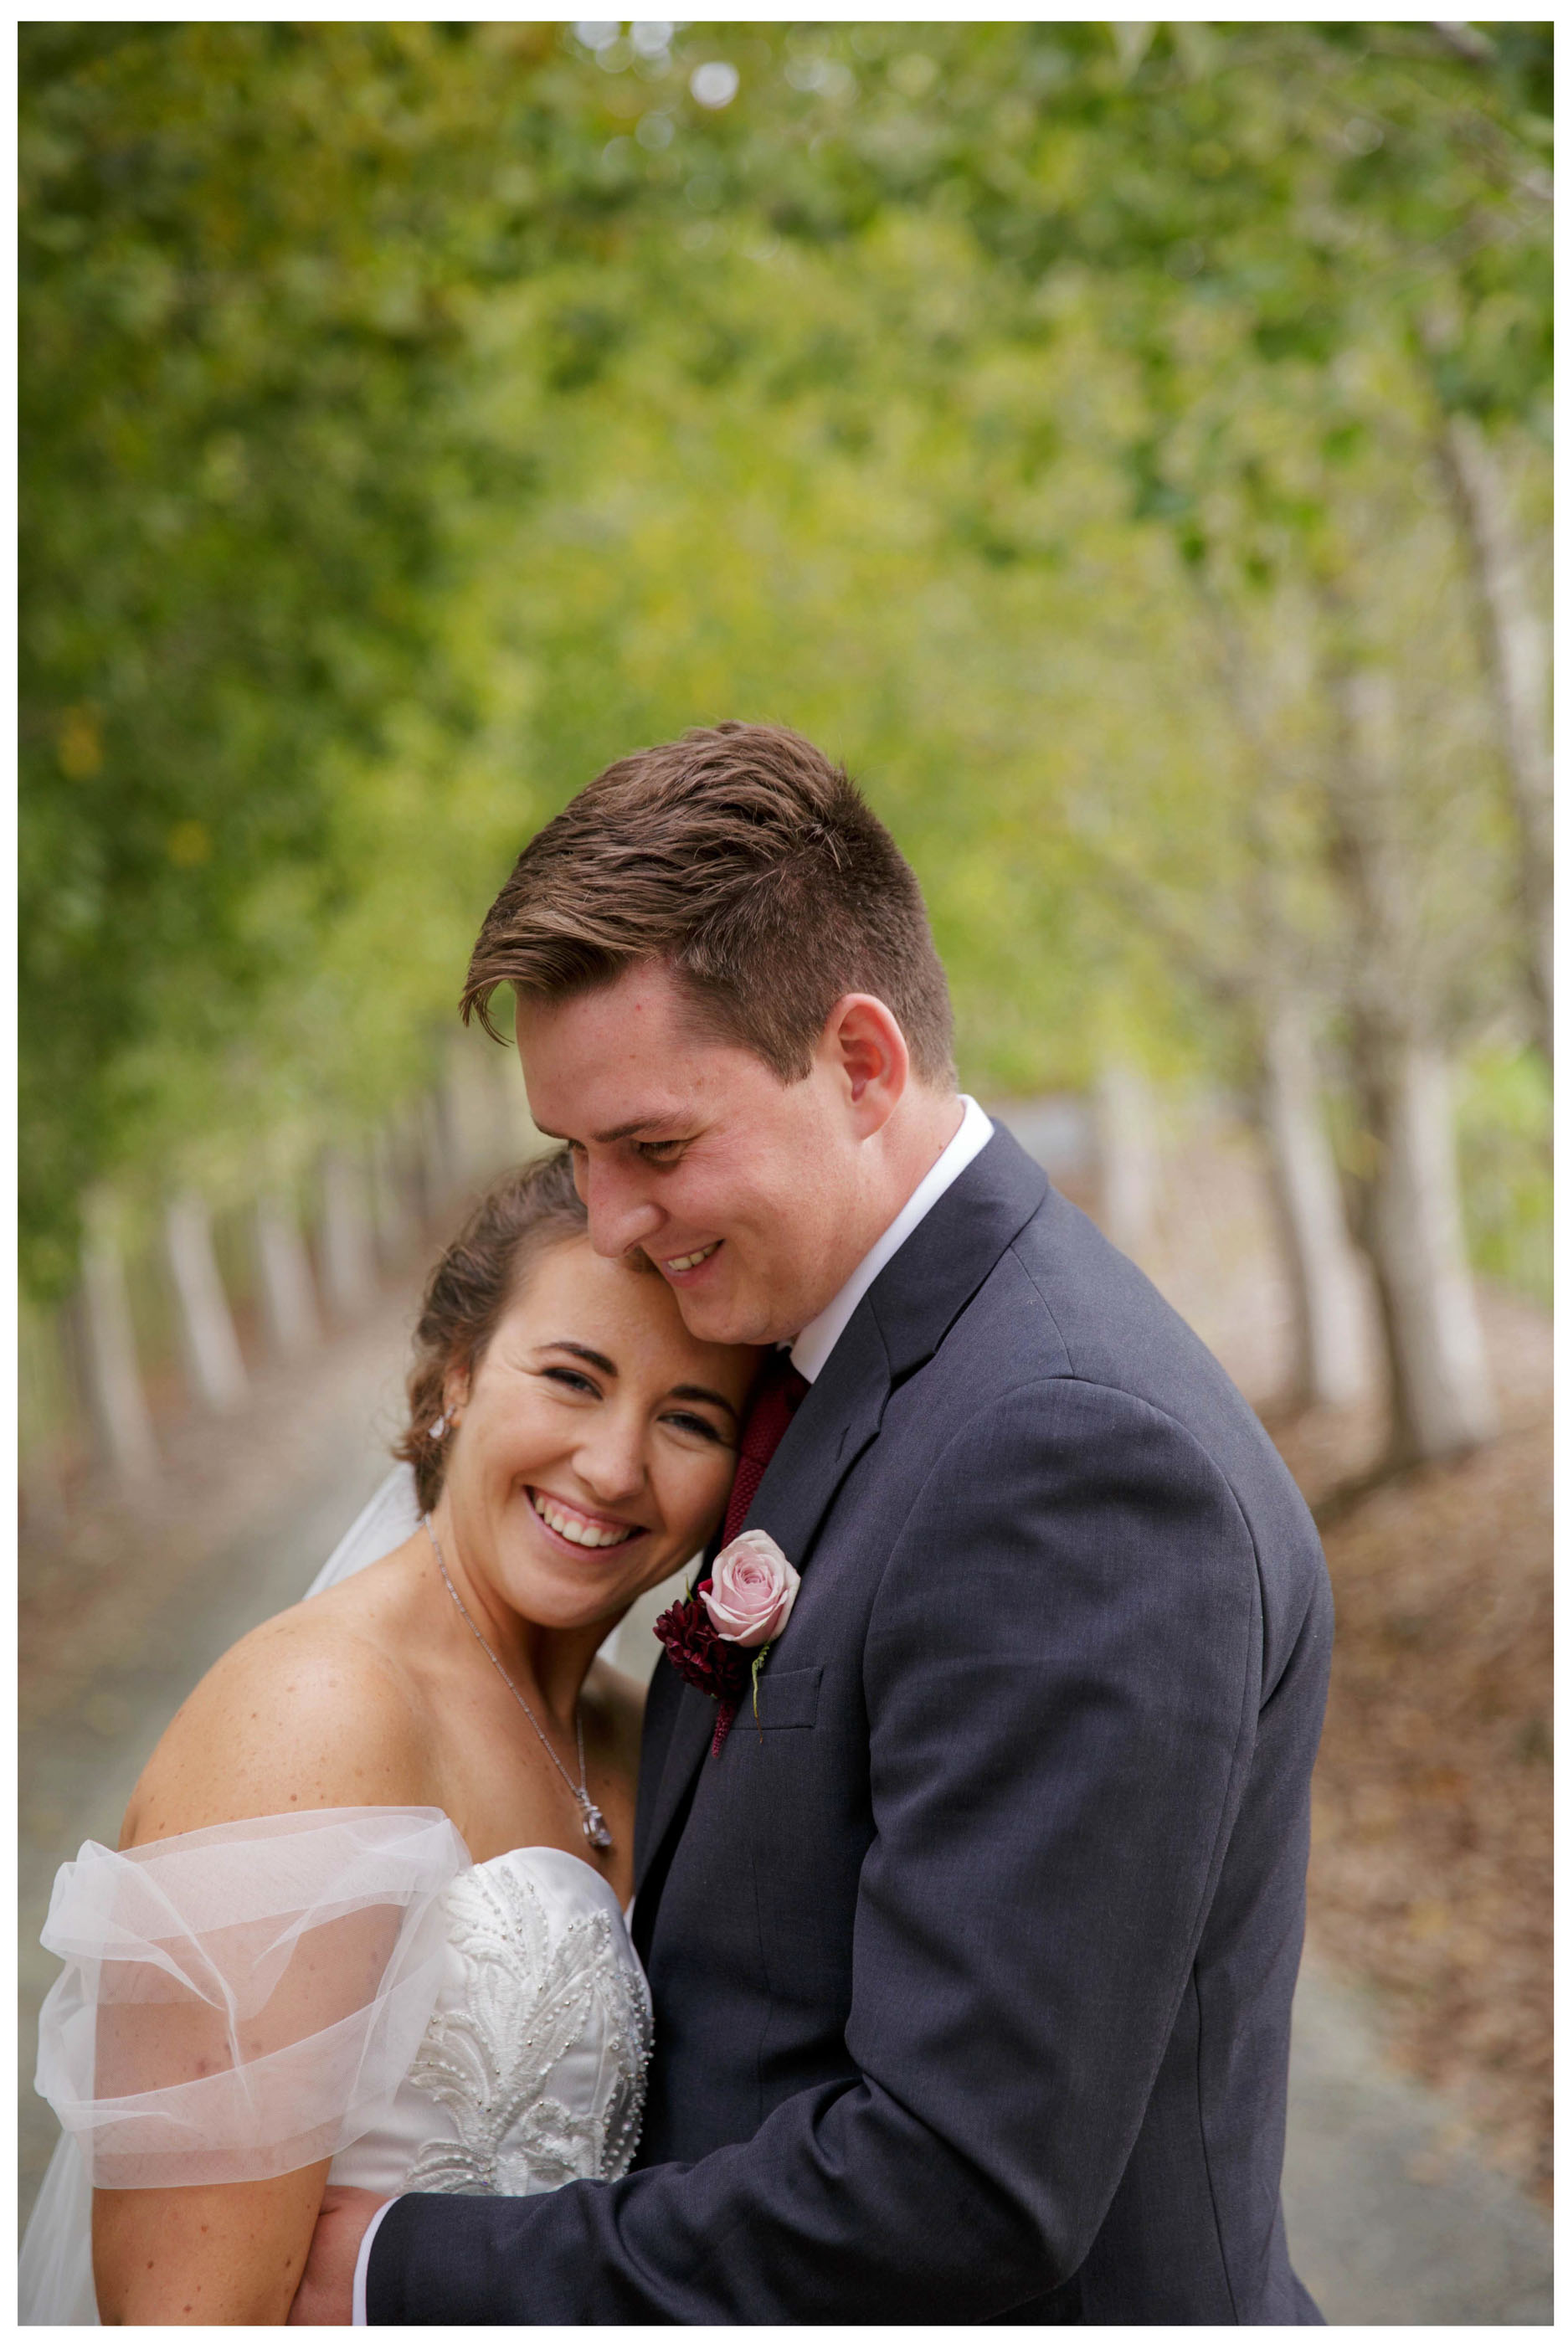 Bride and groom loving happy photo outdoors at Kumeu wedding